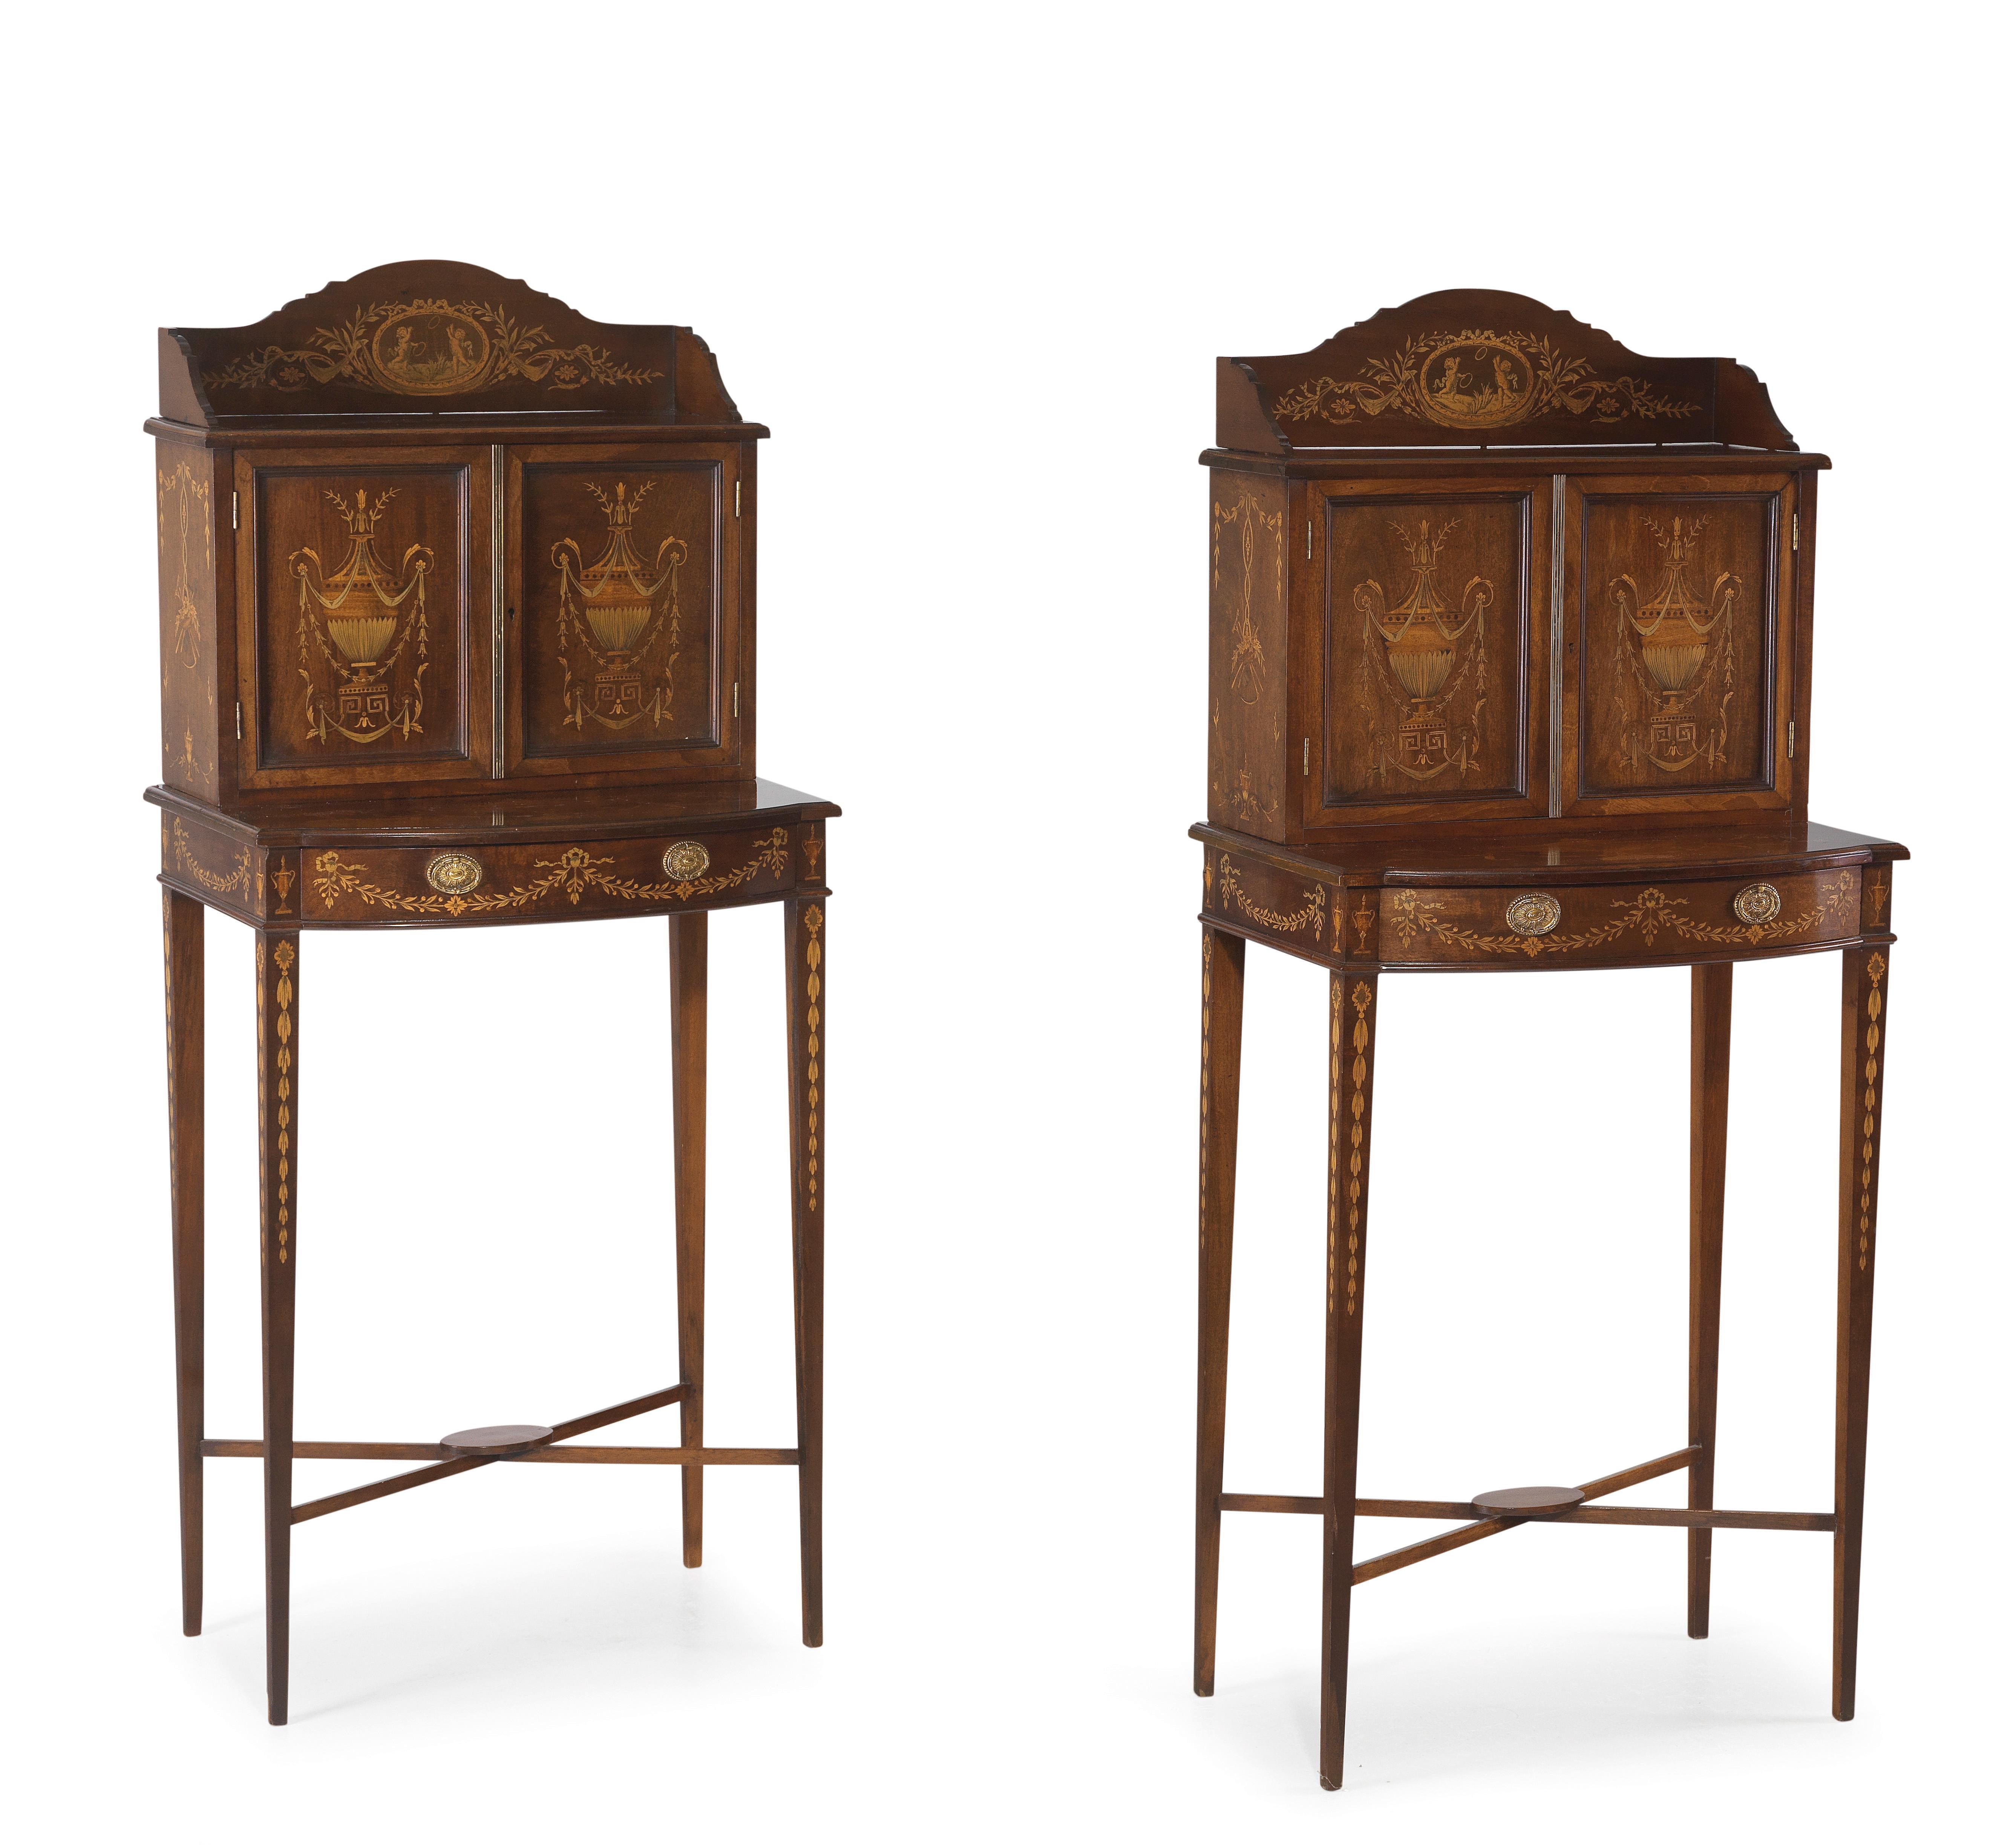 Pair Of Dainty English Tables With Cartonniers Furniture And